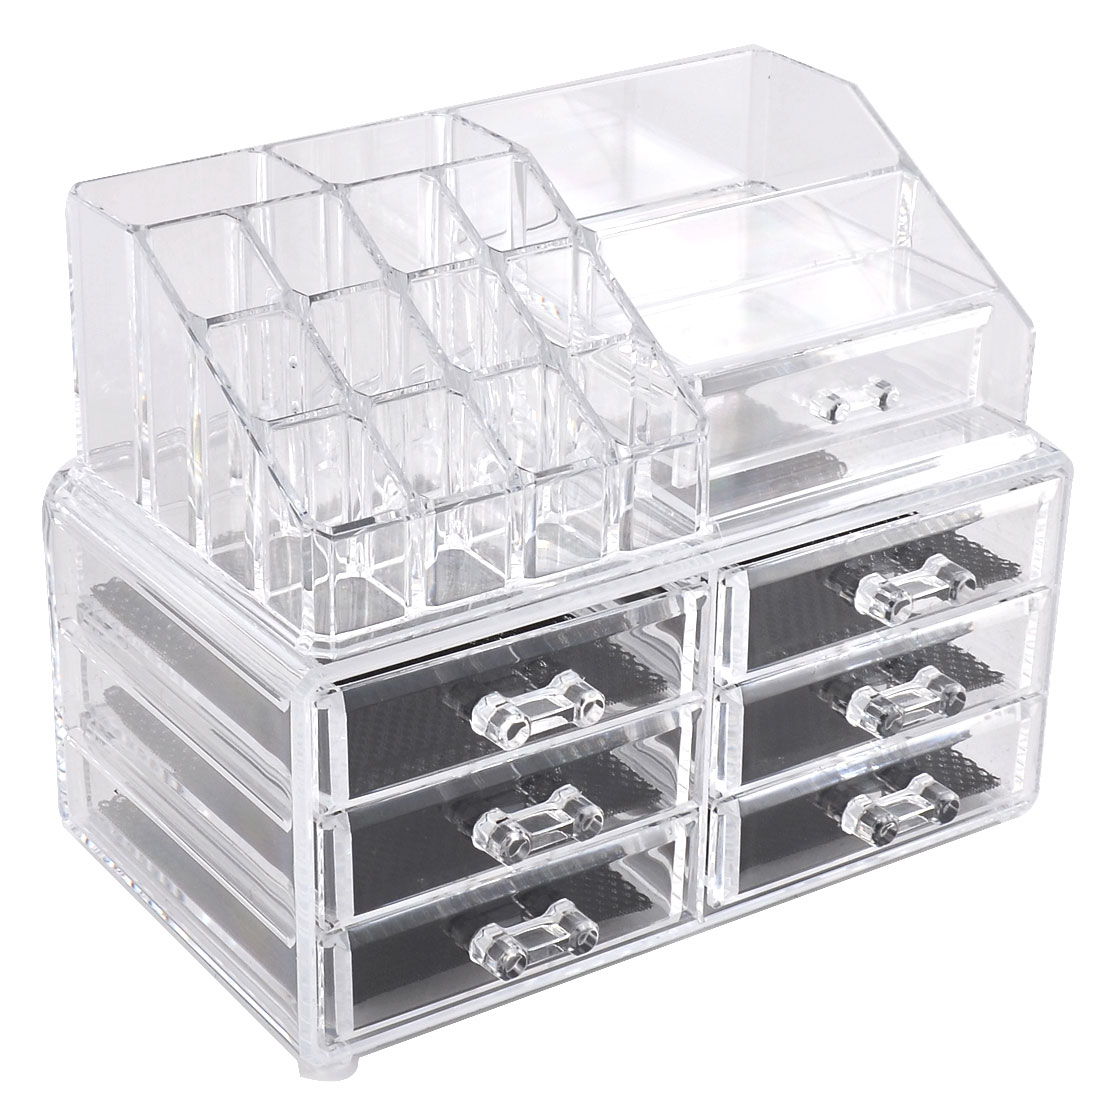 Lady Acrylic Makeup Tool Storage Case Display Box Cosmetics Jewelry Organizer Set 2 in 1